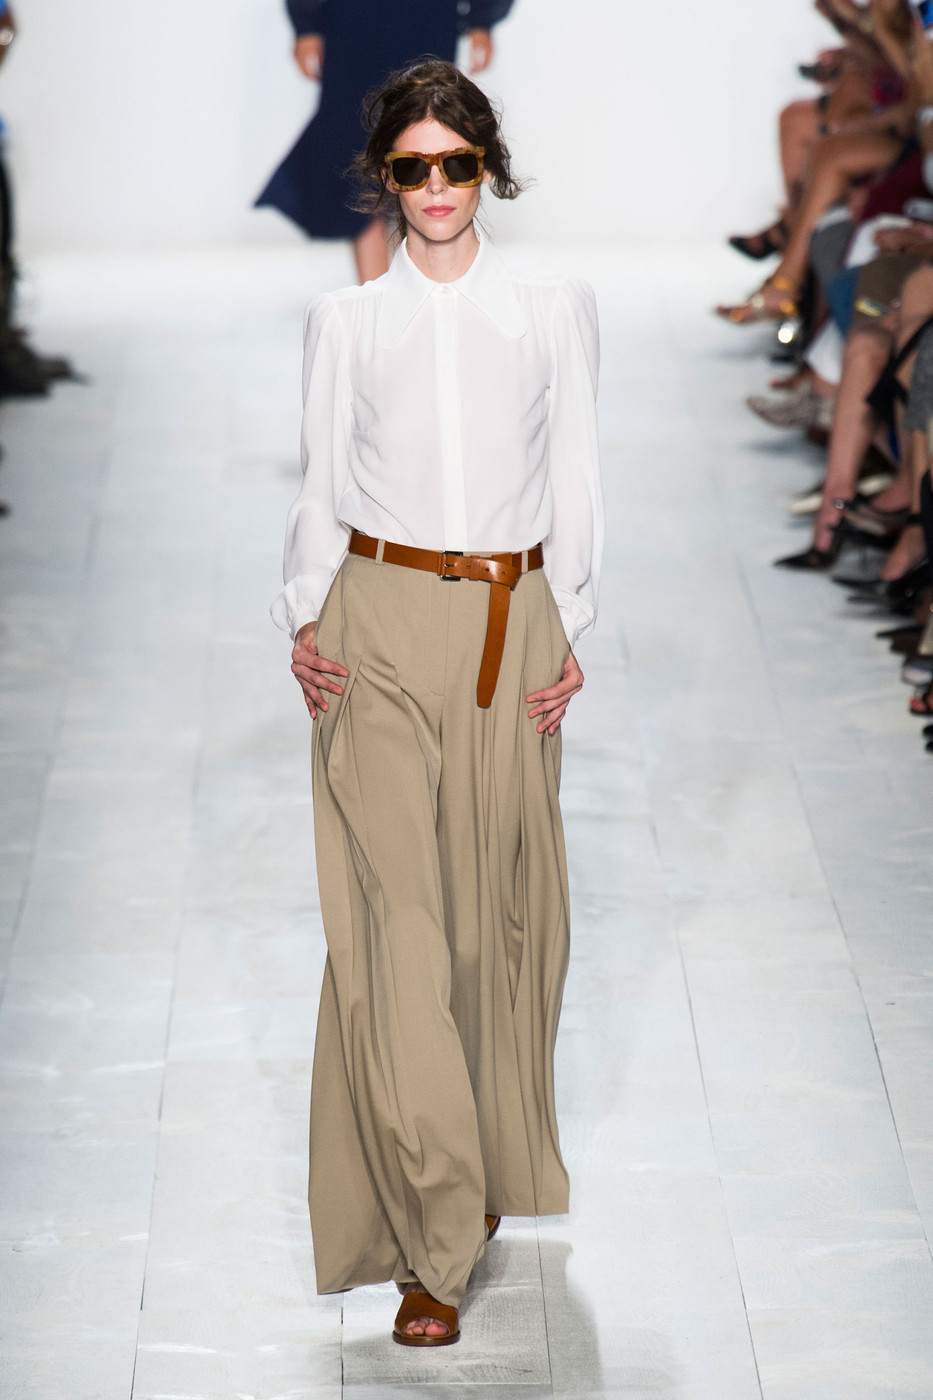 New York Fashion Week Spring 2014, Michael Kors